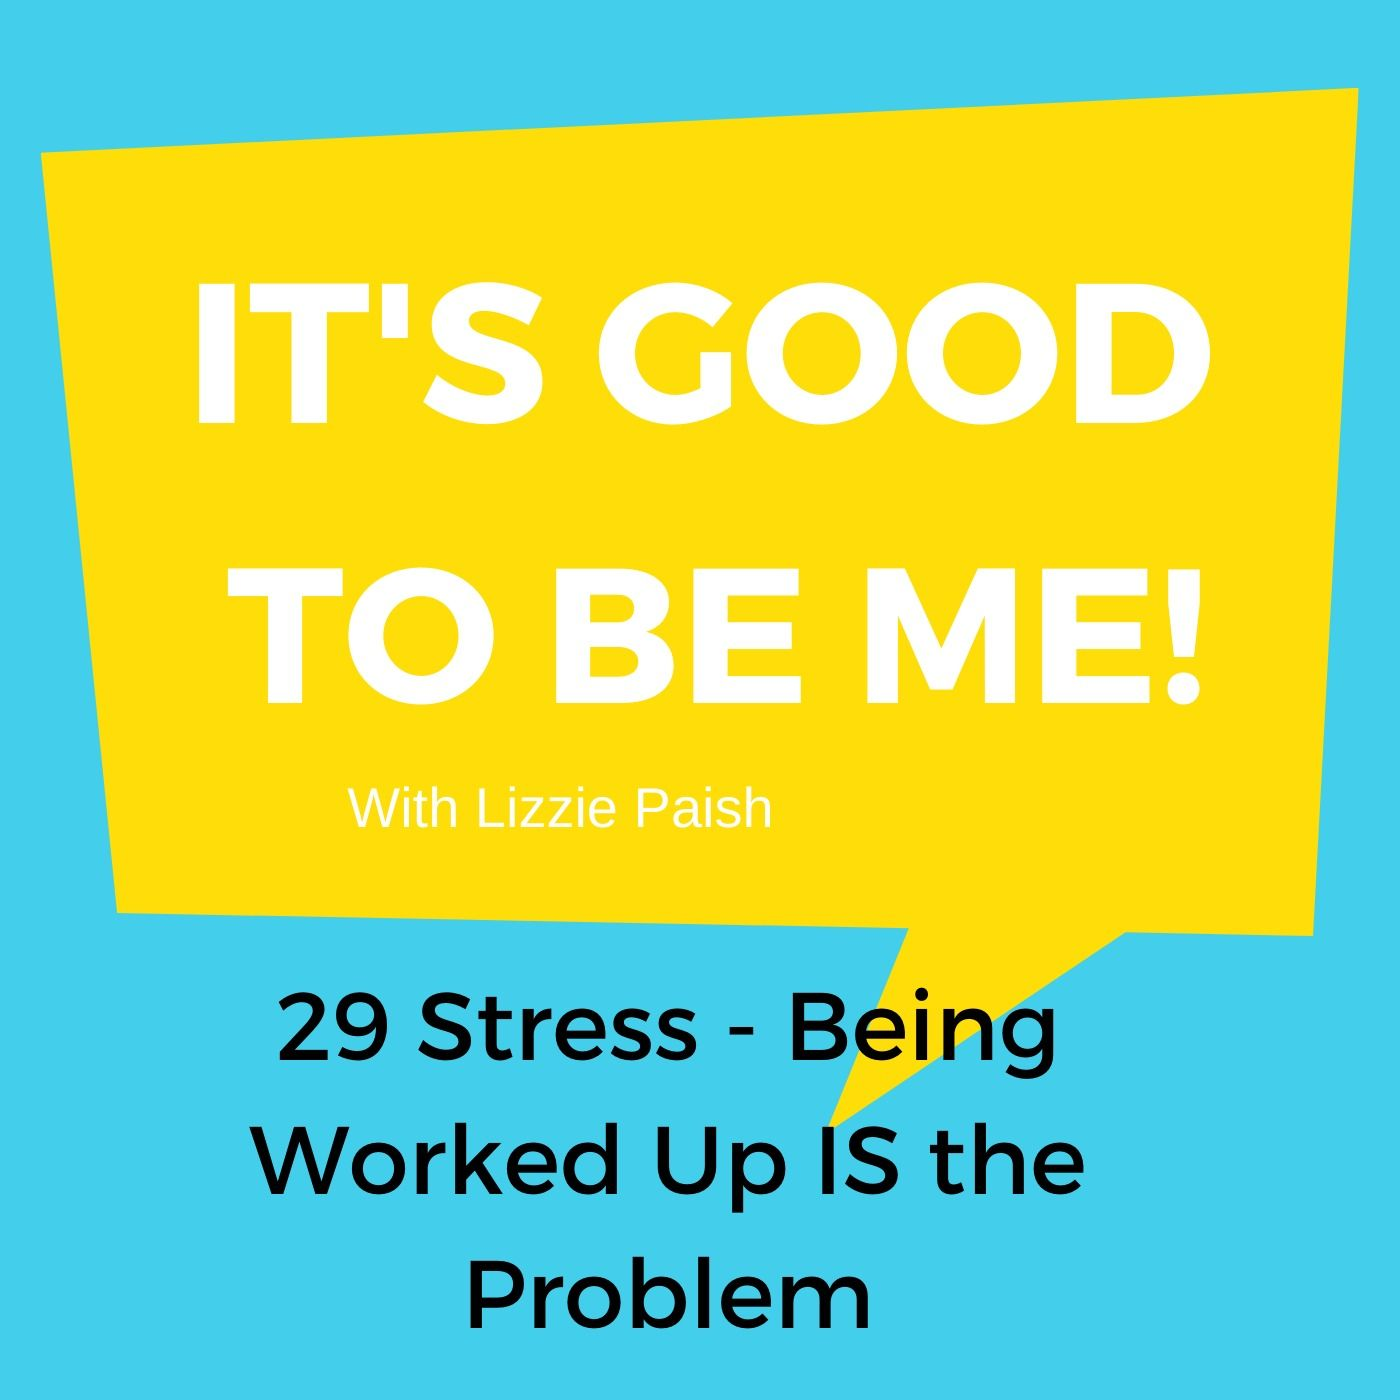 Stress - Being worked up IS the problem